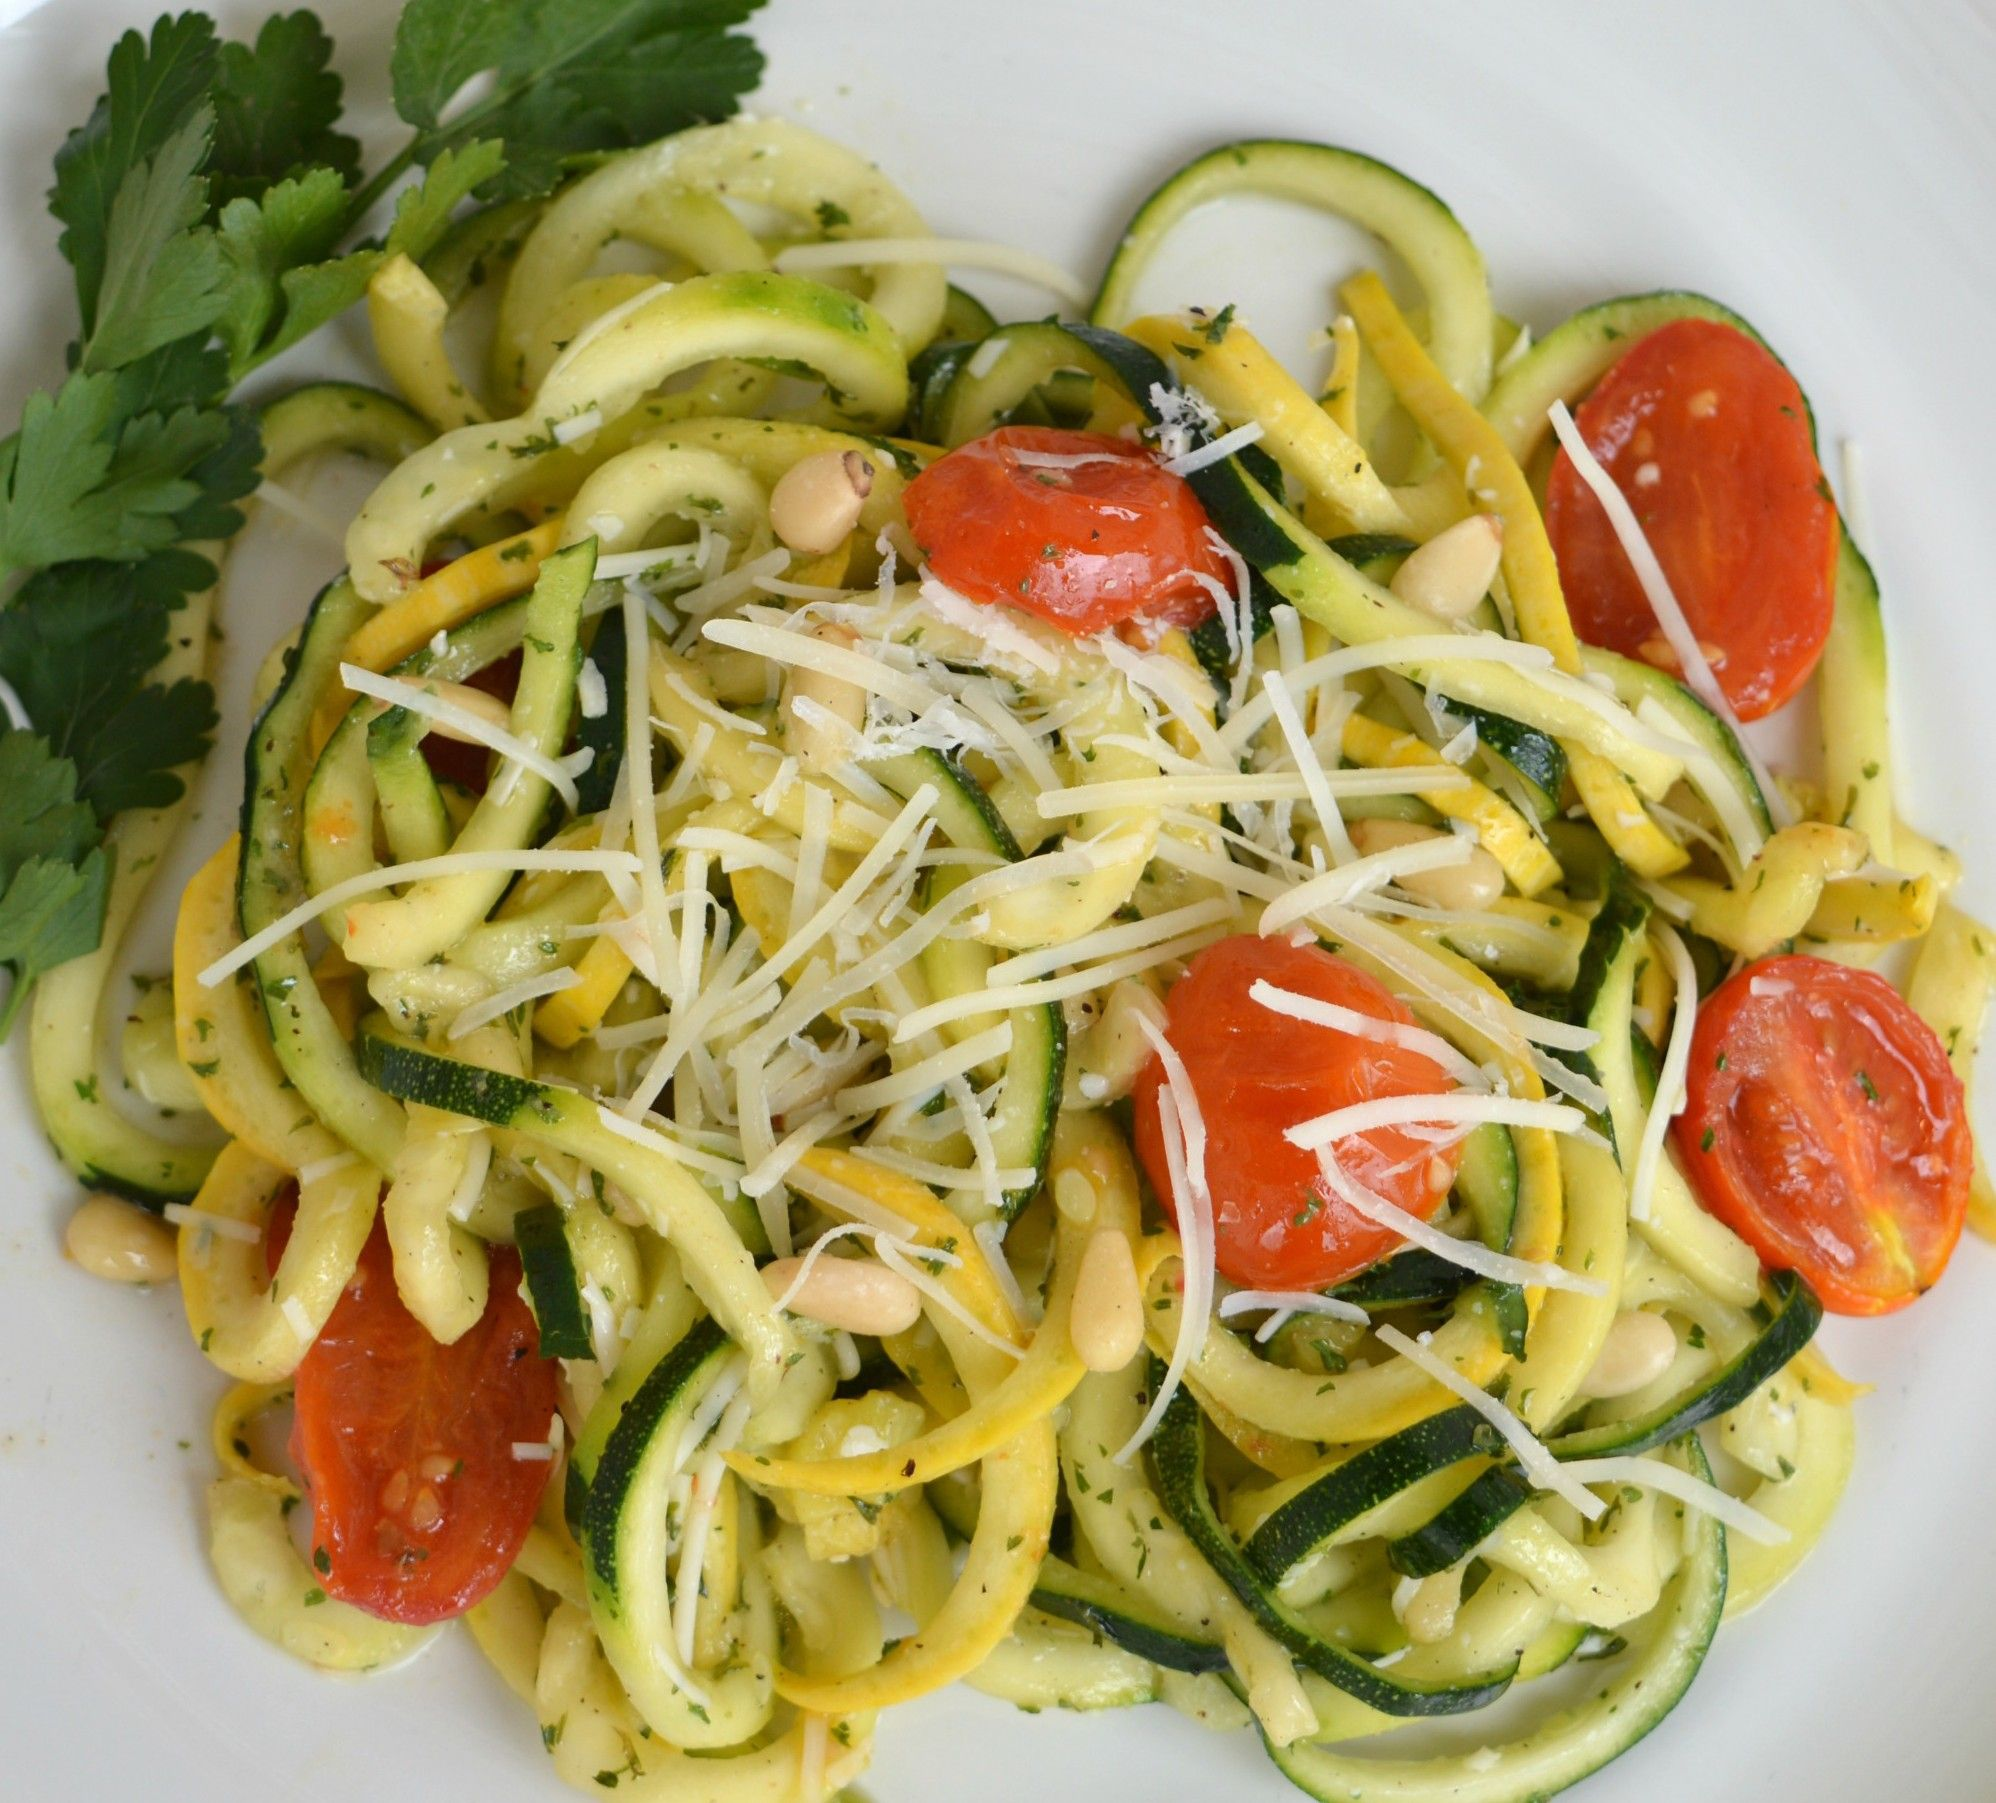 Lemon parmesan zucchini Noodles with roasted tomatoes and pine nuts. Perfect vegetarian meal for Spring!